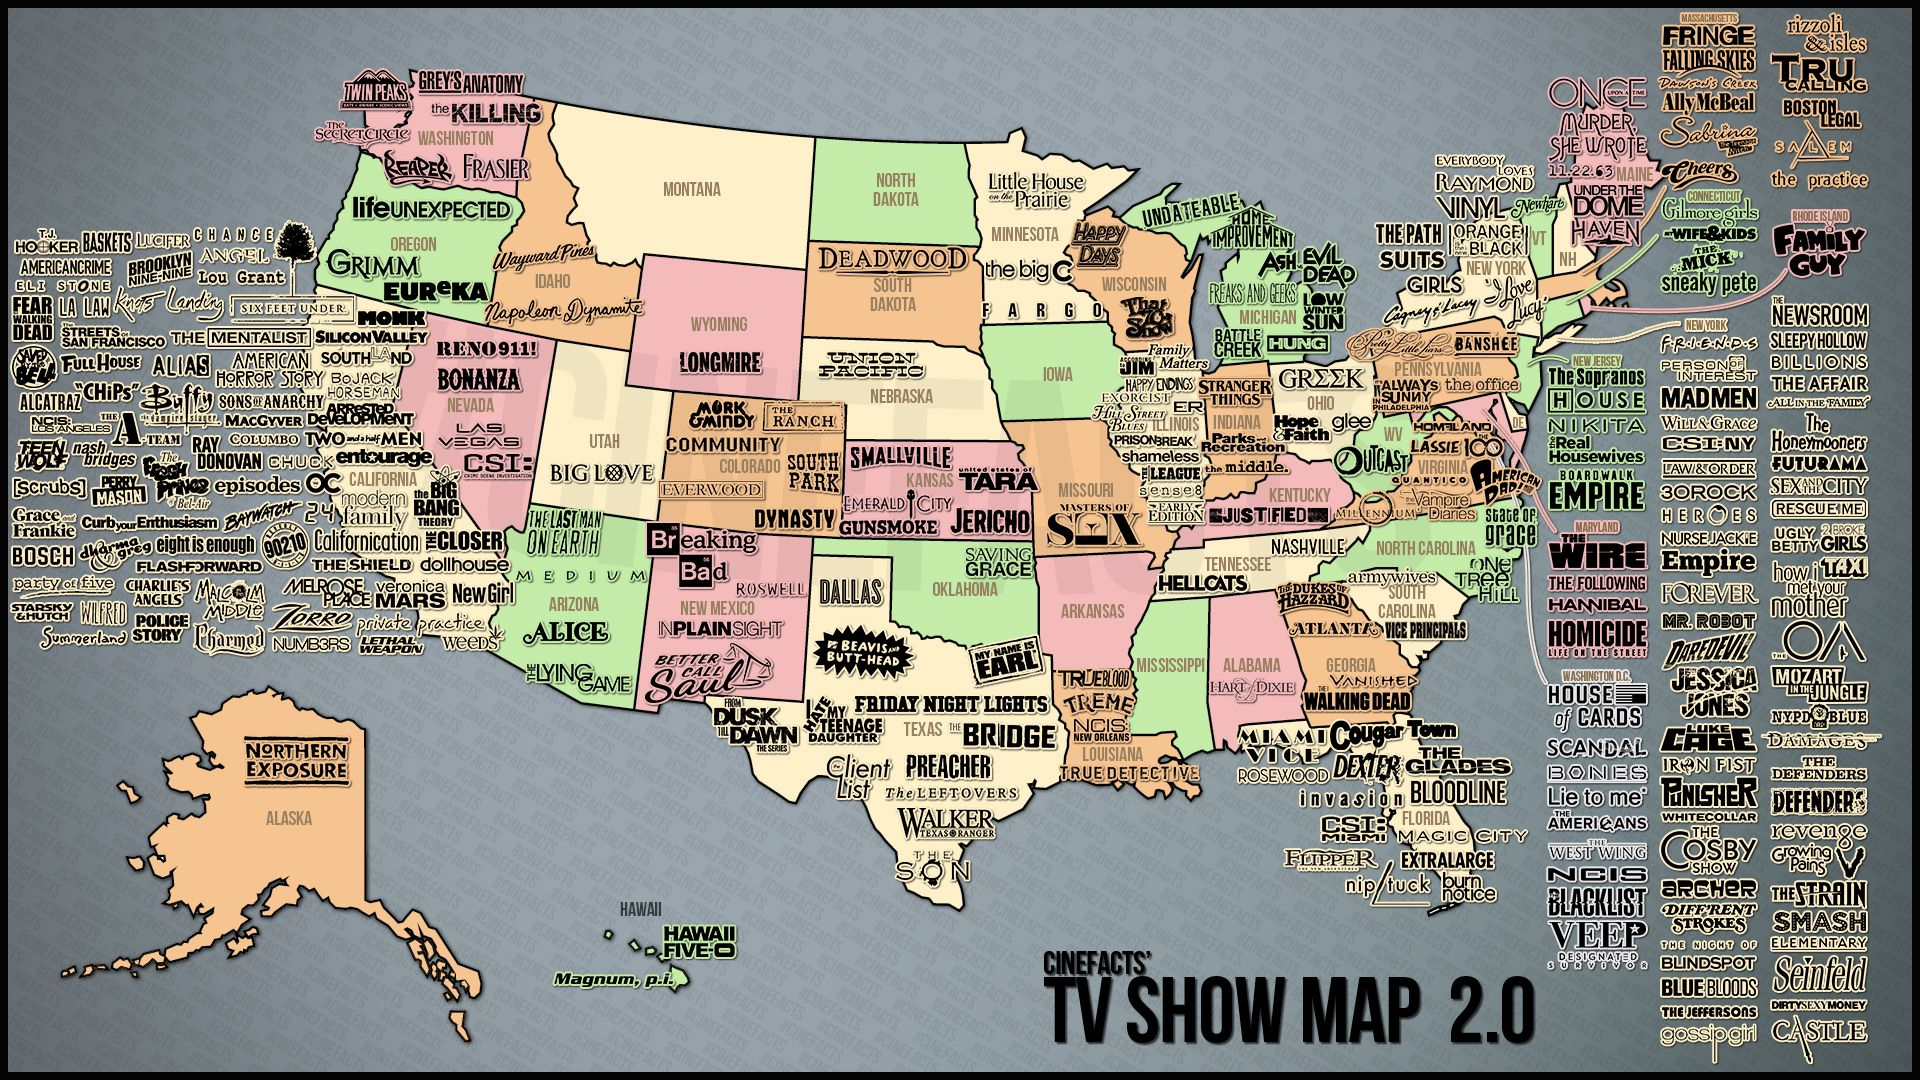 Show Us Map With States U.S. map of TV shows | Us map, Map, The americans tv show